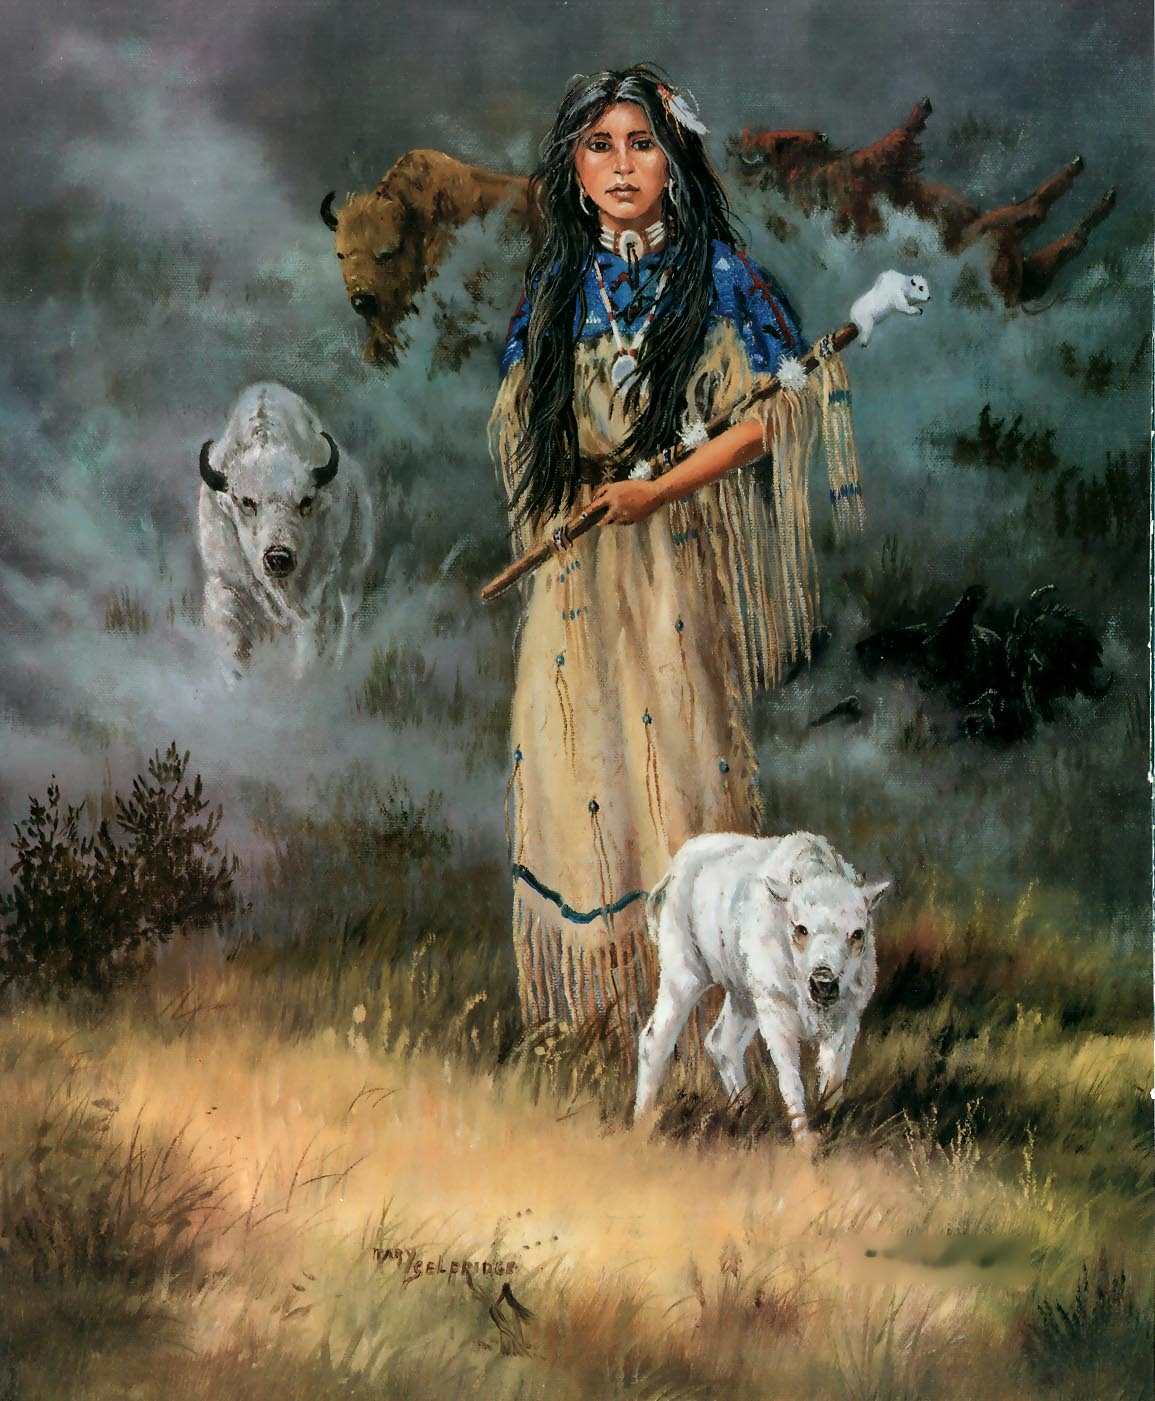 a legend of the holy woman pte ska win in the lakota tribe White buffalo calf woman (lakota: pte ska win / pteskawin / ptesanwi) is a sacred woman of supernatural origin, central to the lakota religion as the primary cultural .